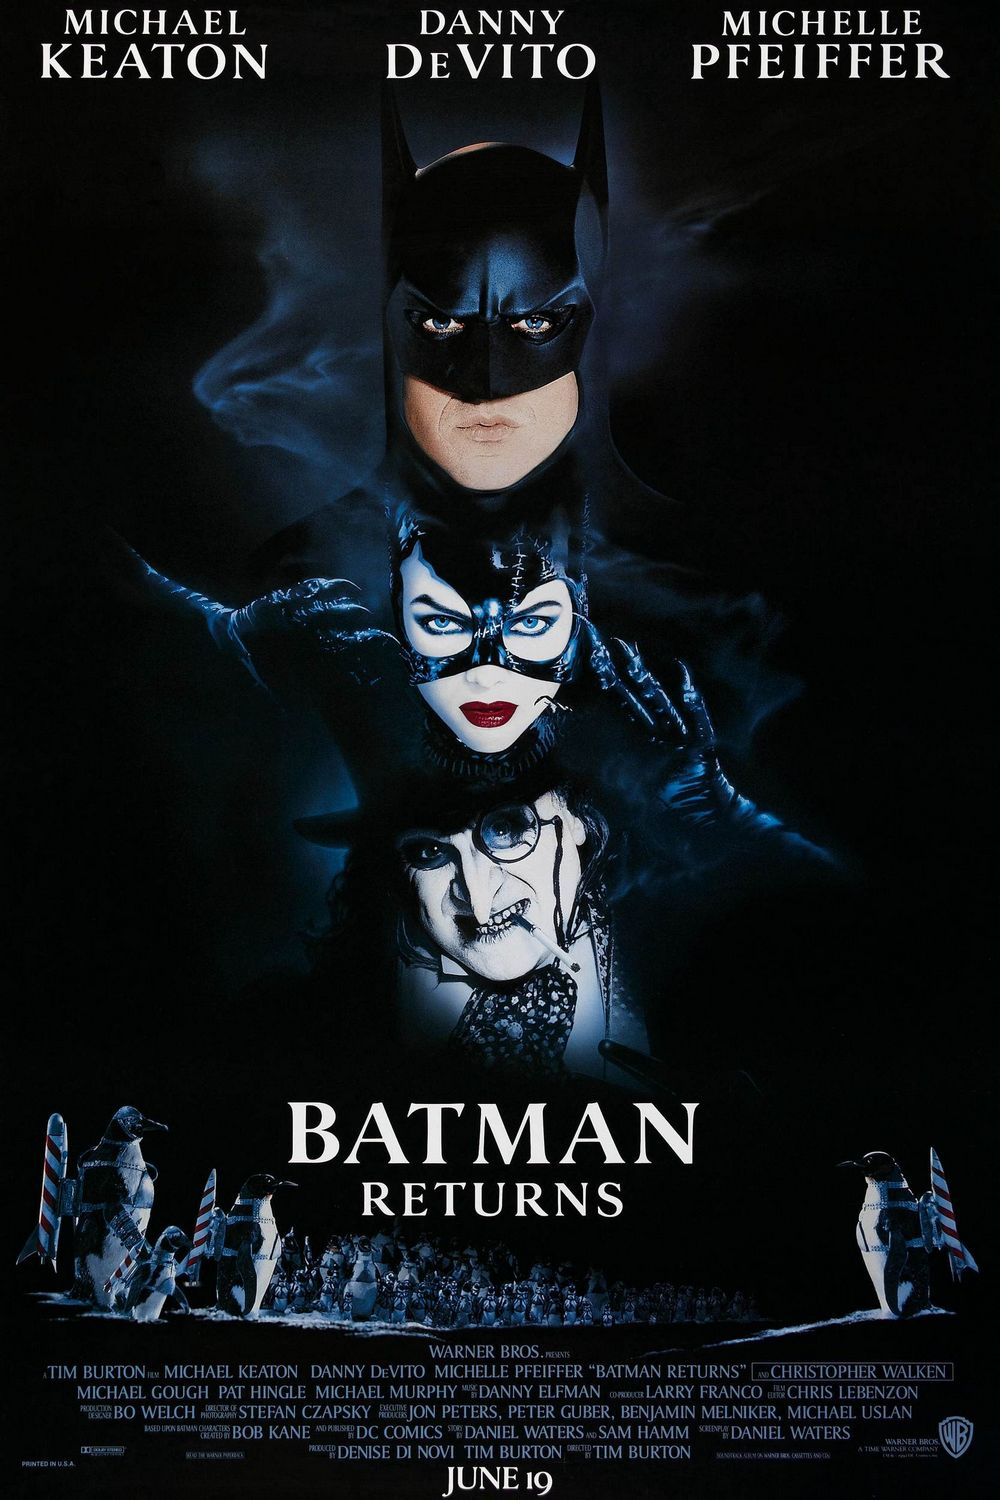 Batman-Returns-movie-poster.jpg